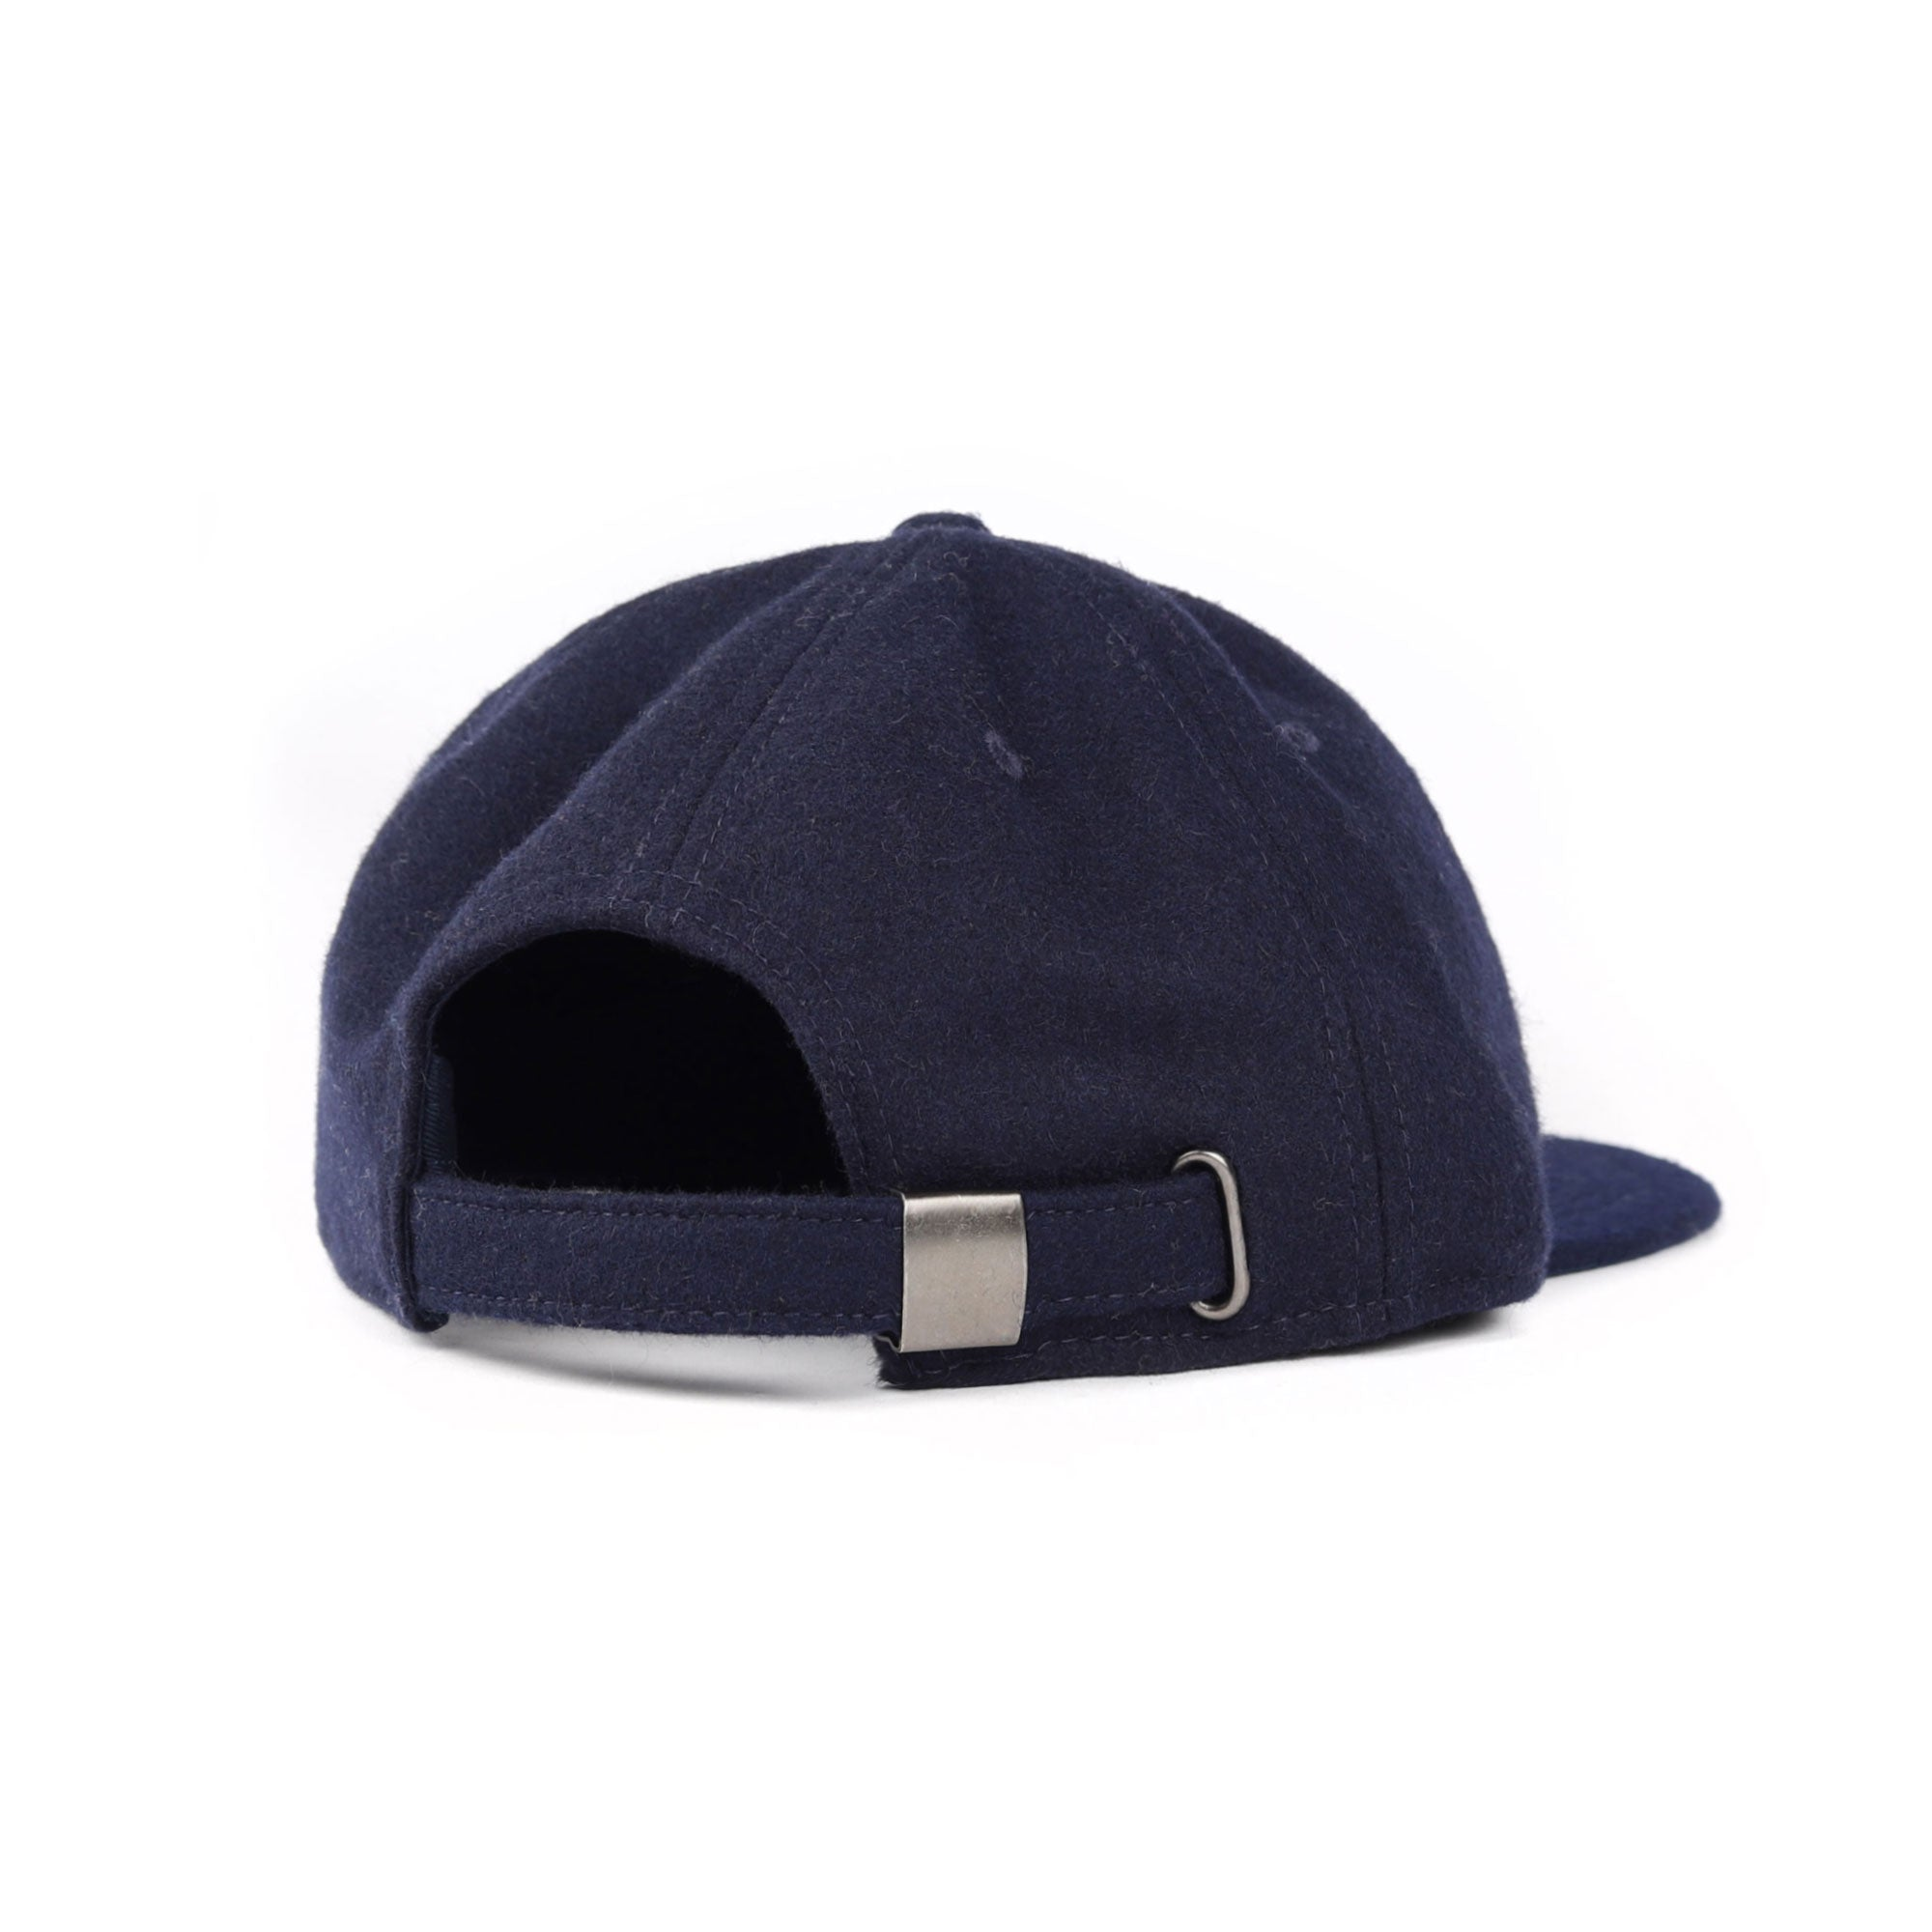 Beyond B Team Cap Product Photo #3